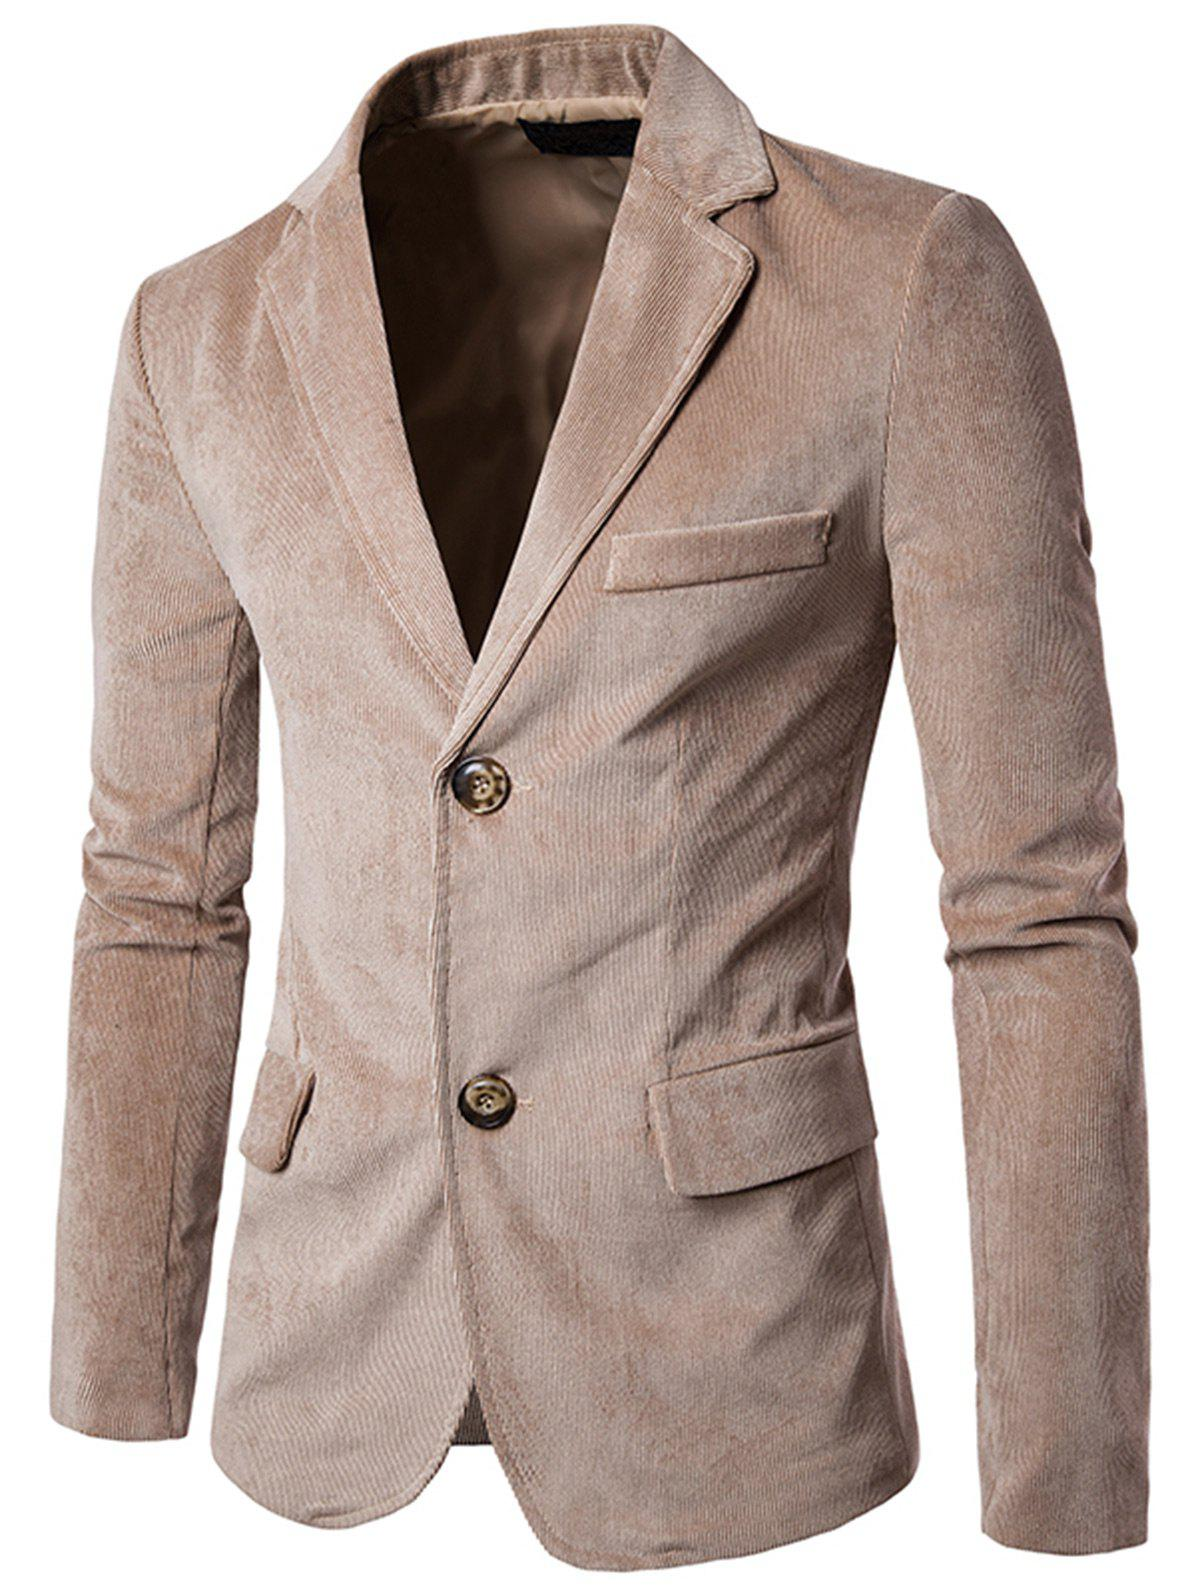 Flap Pockets Notch Lapel Corduroy Casual Blazer - CAMEL XL